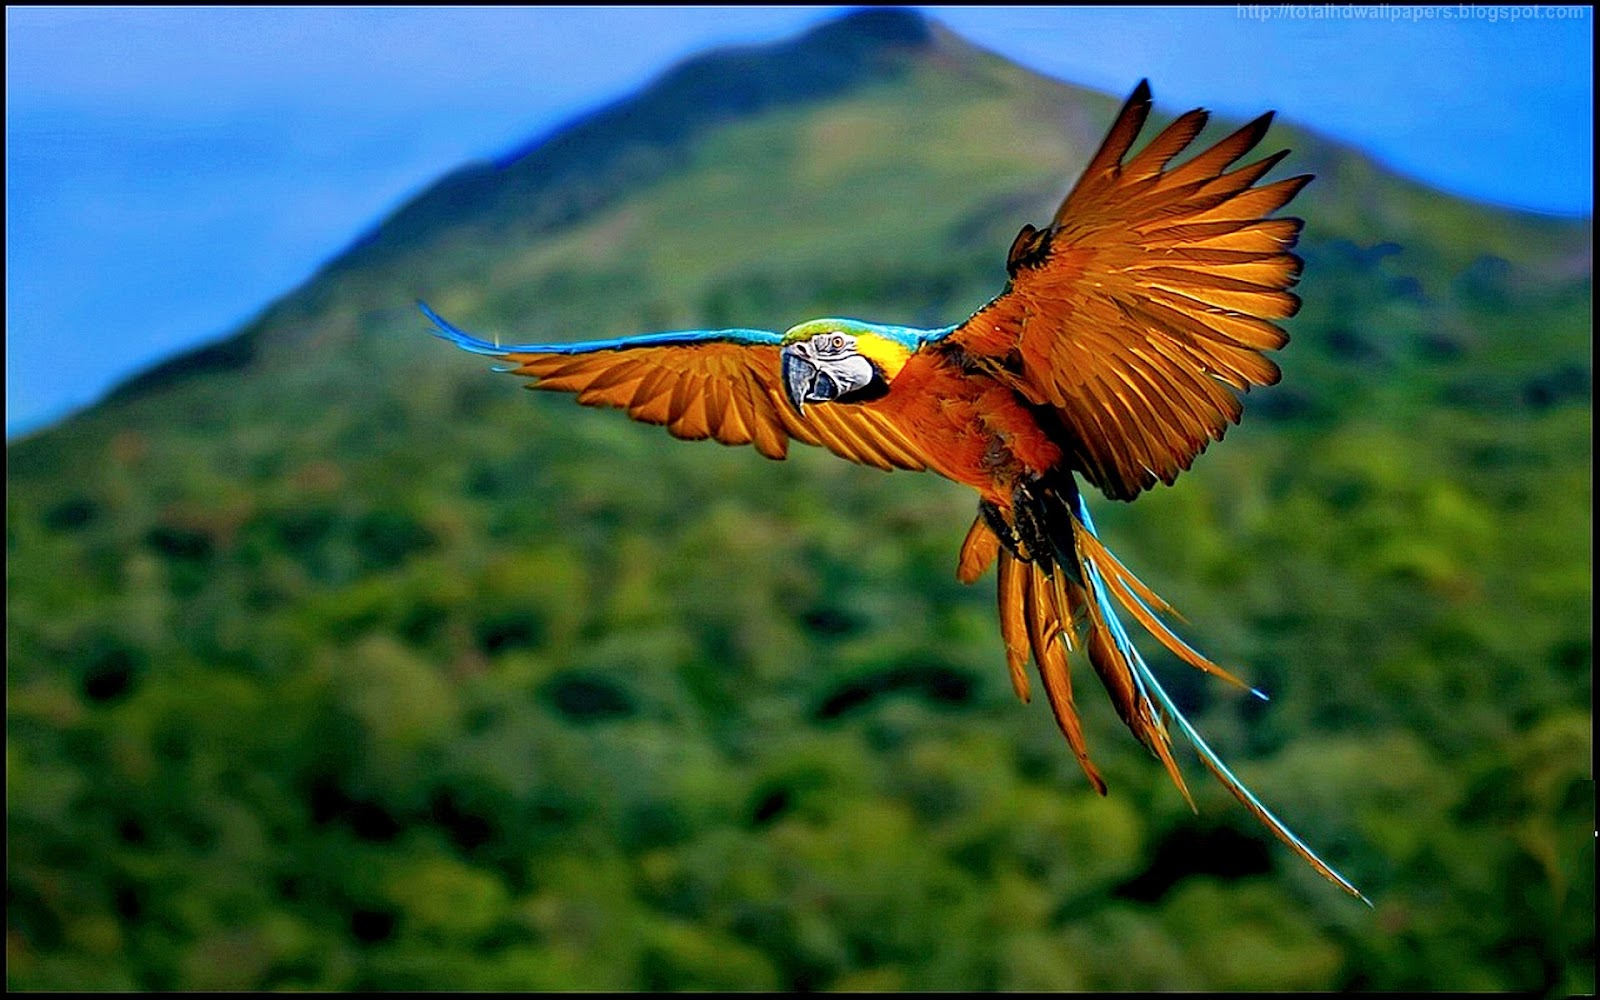 Kamal shah amazon parrot hd wallpapers - Amazon wallpaper hd ...